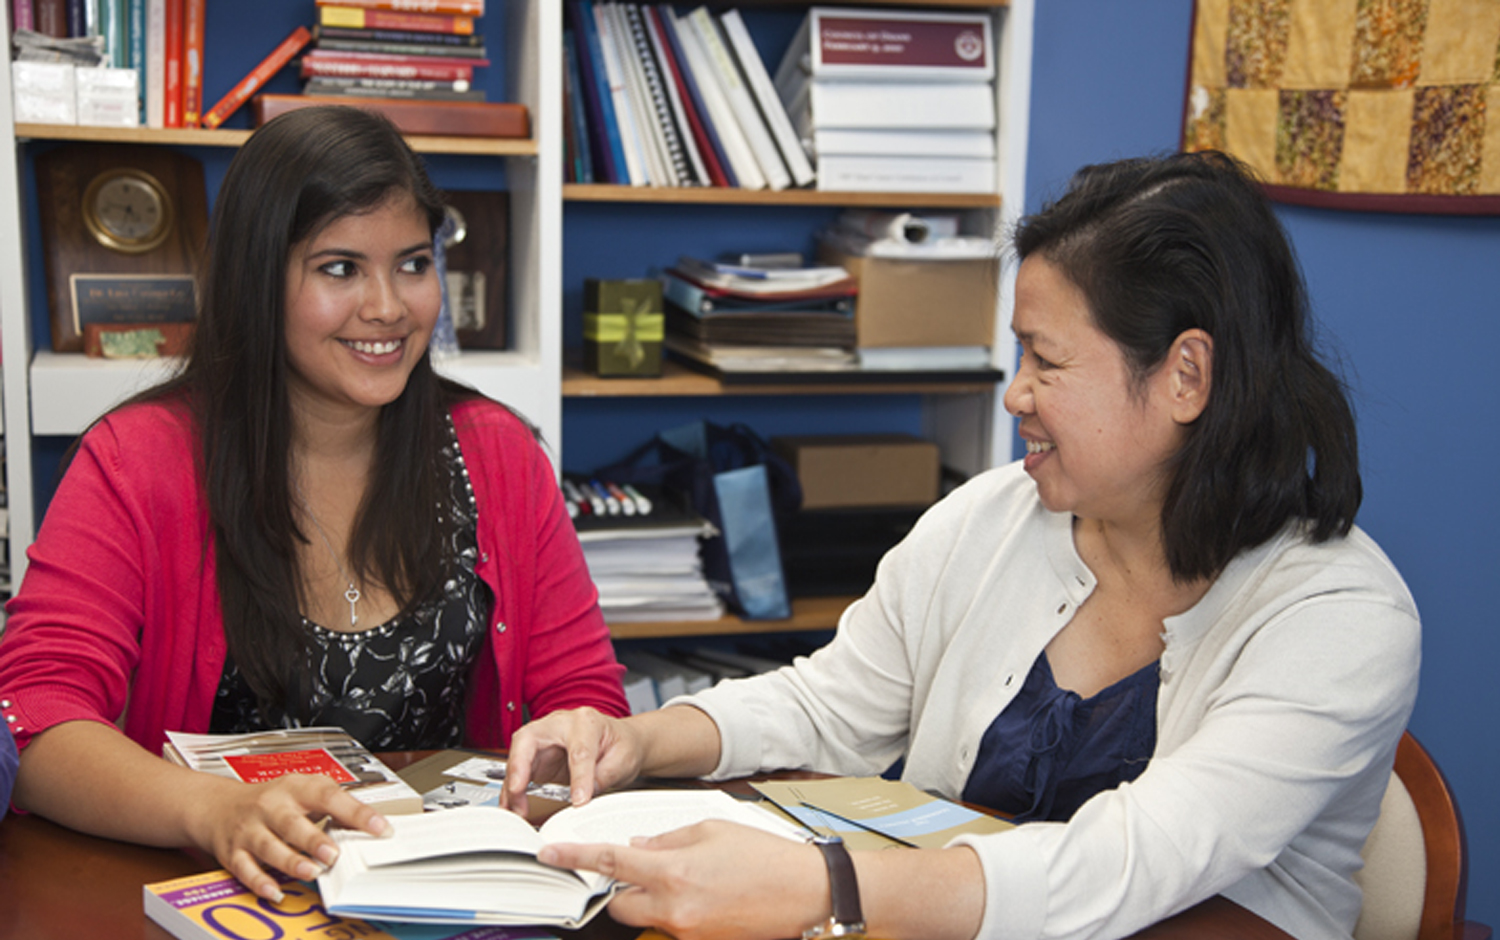 Licensed counselors from St. Edward's University can have a rewarding career helping others.